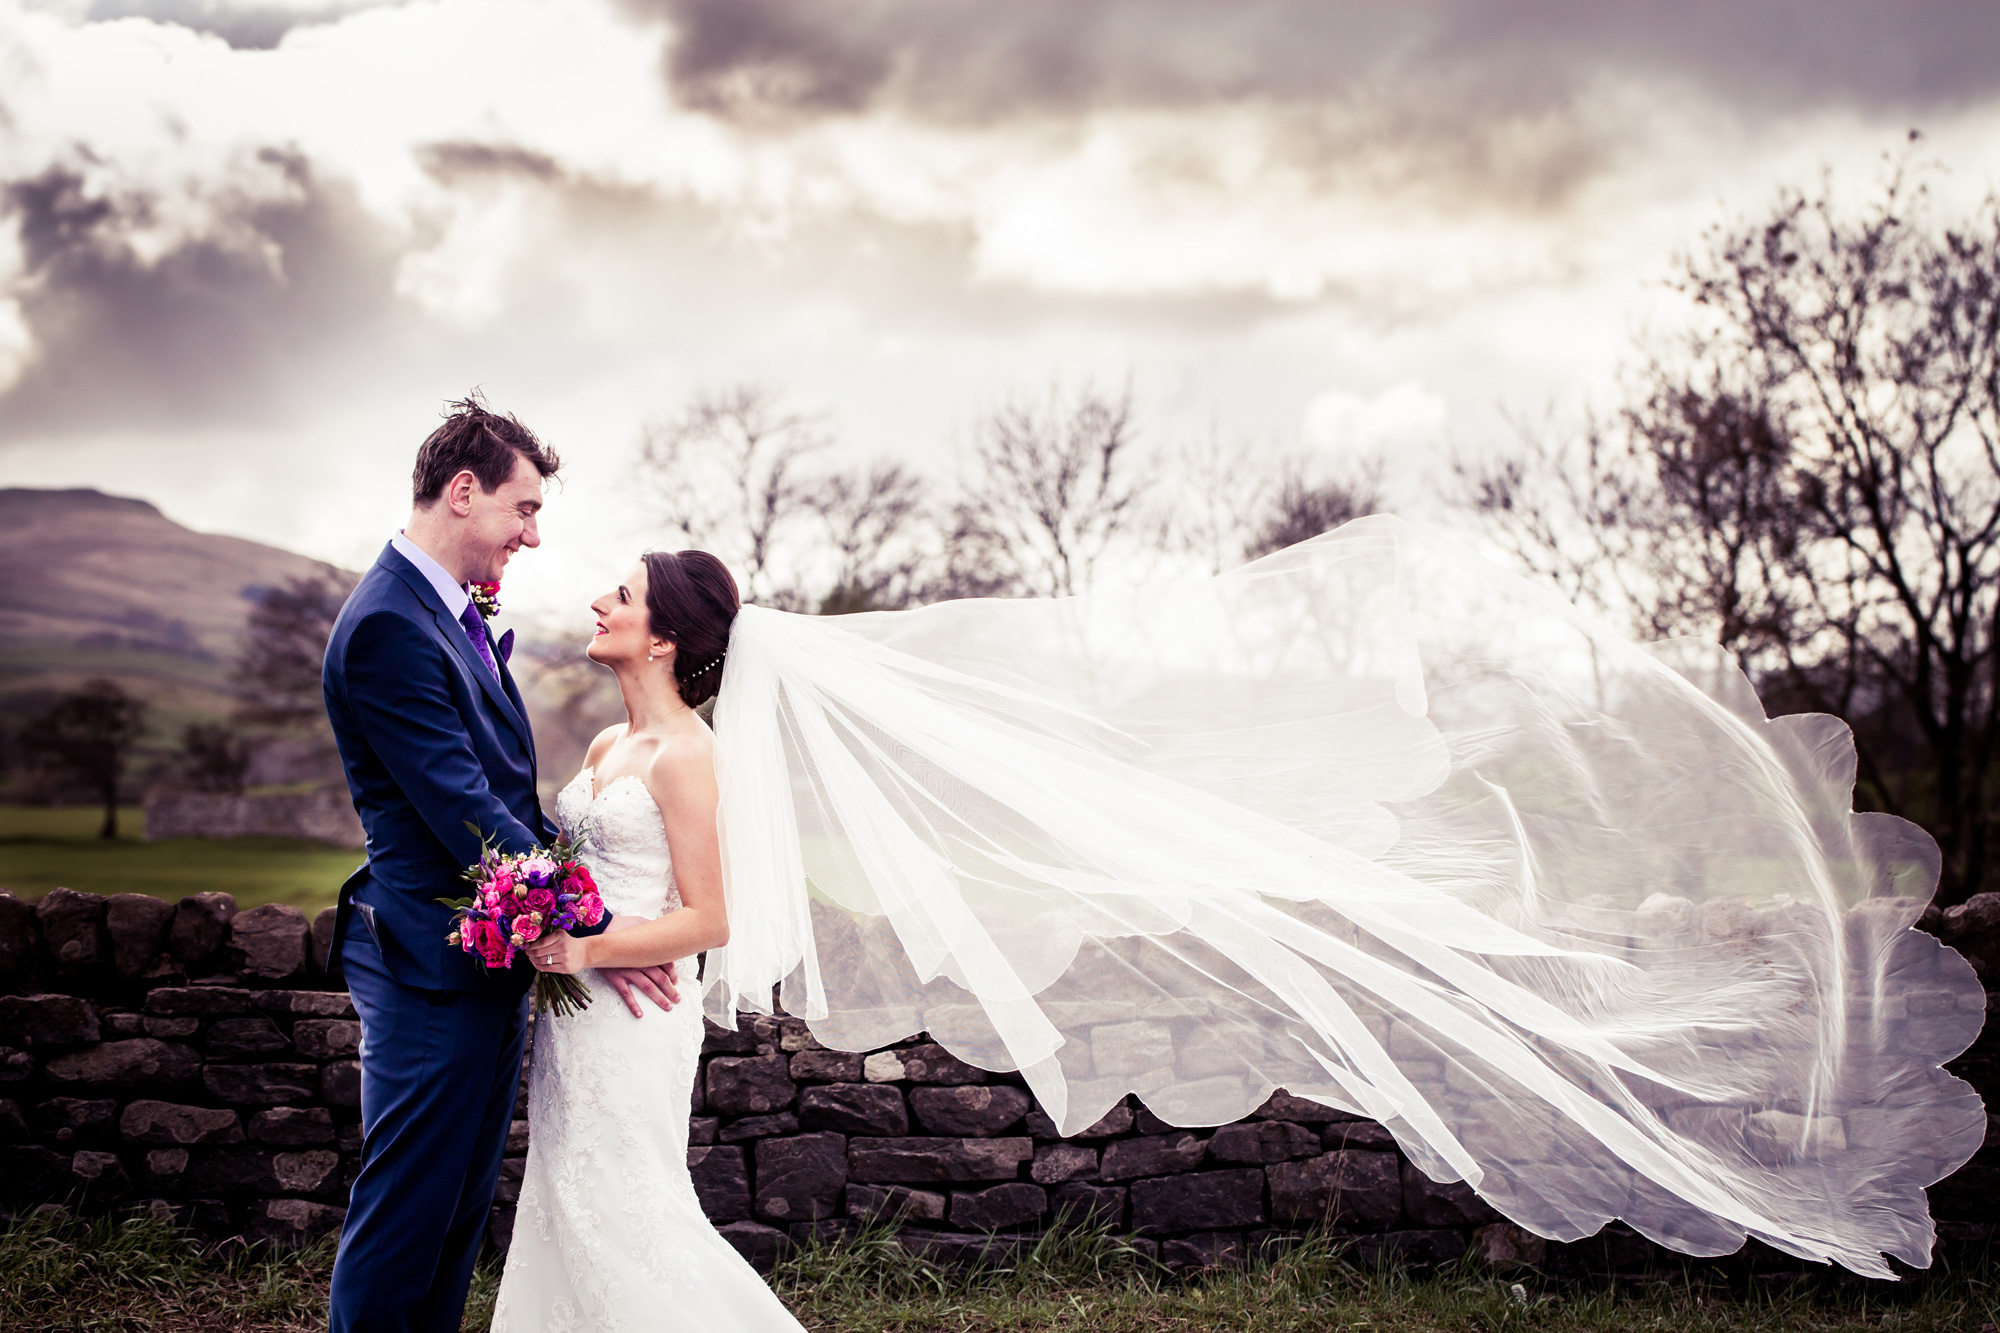 wedding-photgraphy-by-kathryn-yorkshire-skipton-leeds-ilkley-harrogate-york-approach-7